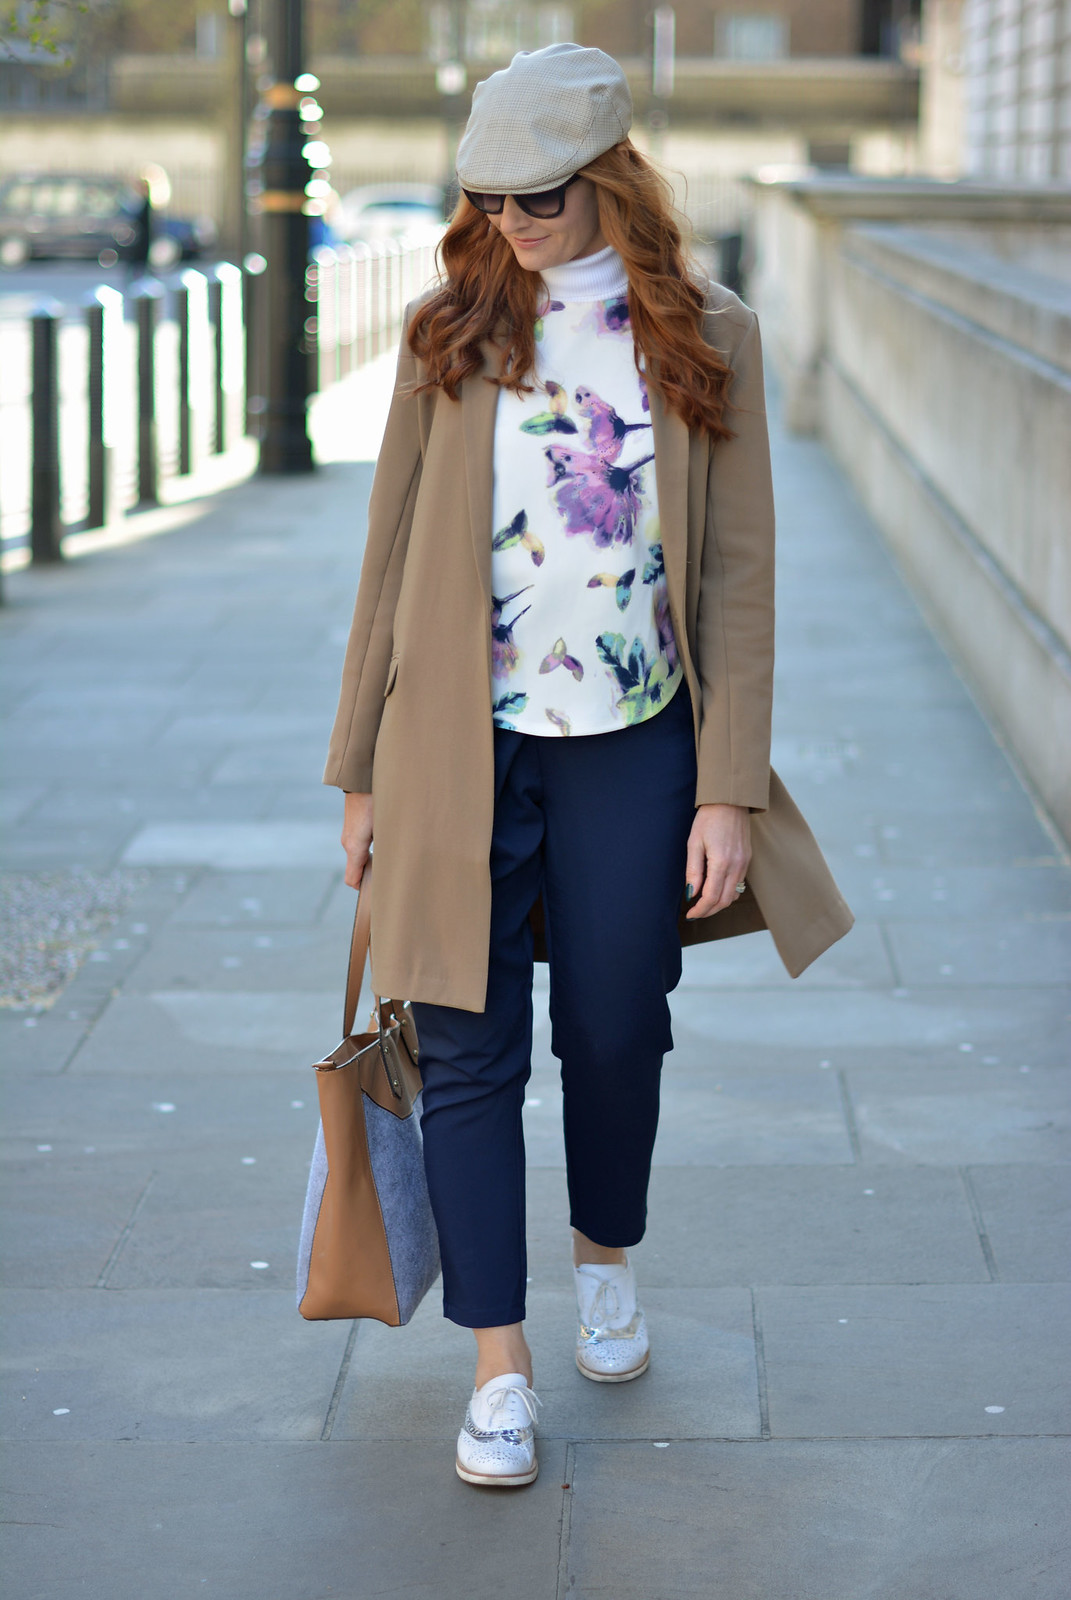 Comfy sightseeing outfit: Longline blazer, layers, navy trousers, white brogues